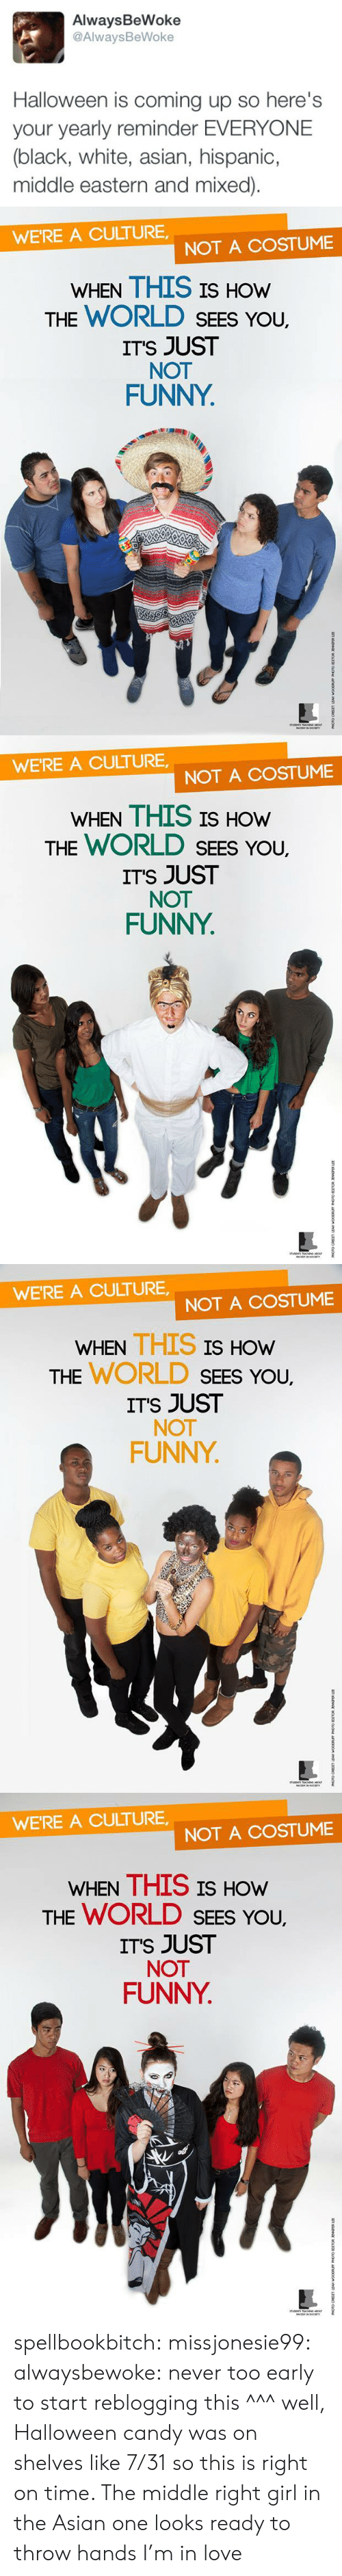 Asian, Candy, and Funny: AlwaysBeWoke  @AlwaysBeWoke  Halloween is coming up so here's  your yearly reminder EVERYONE  (black, white, asian, hispanic,  middle eastern and mixed)   WE'RE A CULTURE  NOT A COSTUME  WHEN THIS IS HOW  THE WORLD SEES YoU.  ITS JUST  NOT  FUNNY   WE'RE A CULTURE  NOT A COSTUME  WHEN THIS IS HOW  THE WORLD SEES YoU.  ITS JUST  NOT  FUNNY   WE'RE A CULTURE,  NOT A COSTUME  WHEN THIS IS  HOW  THE WORLD SEEs You,  ITS JUST  NOT  FUNNY   WE'RE A CULTURE  NOT A COSTUME  WHEN THIS IS HOw  THE WORLD SEES You,  ITS JUST  NOT  FUNNY spellbookbitch:  missjonesie99:  alwaysbewoke:  never too early to start reblogging this  ^^^ well, Halloween candy was on shelves like 7/31 so this is right on time.    The middle right girl in the Asian one looks ready to throw hands I'm in love